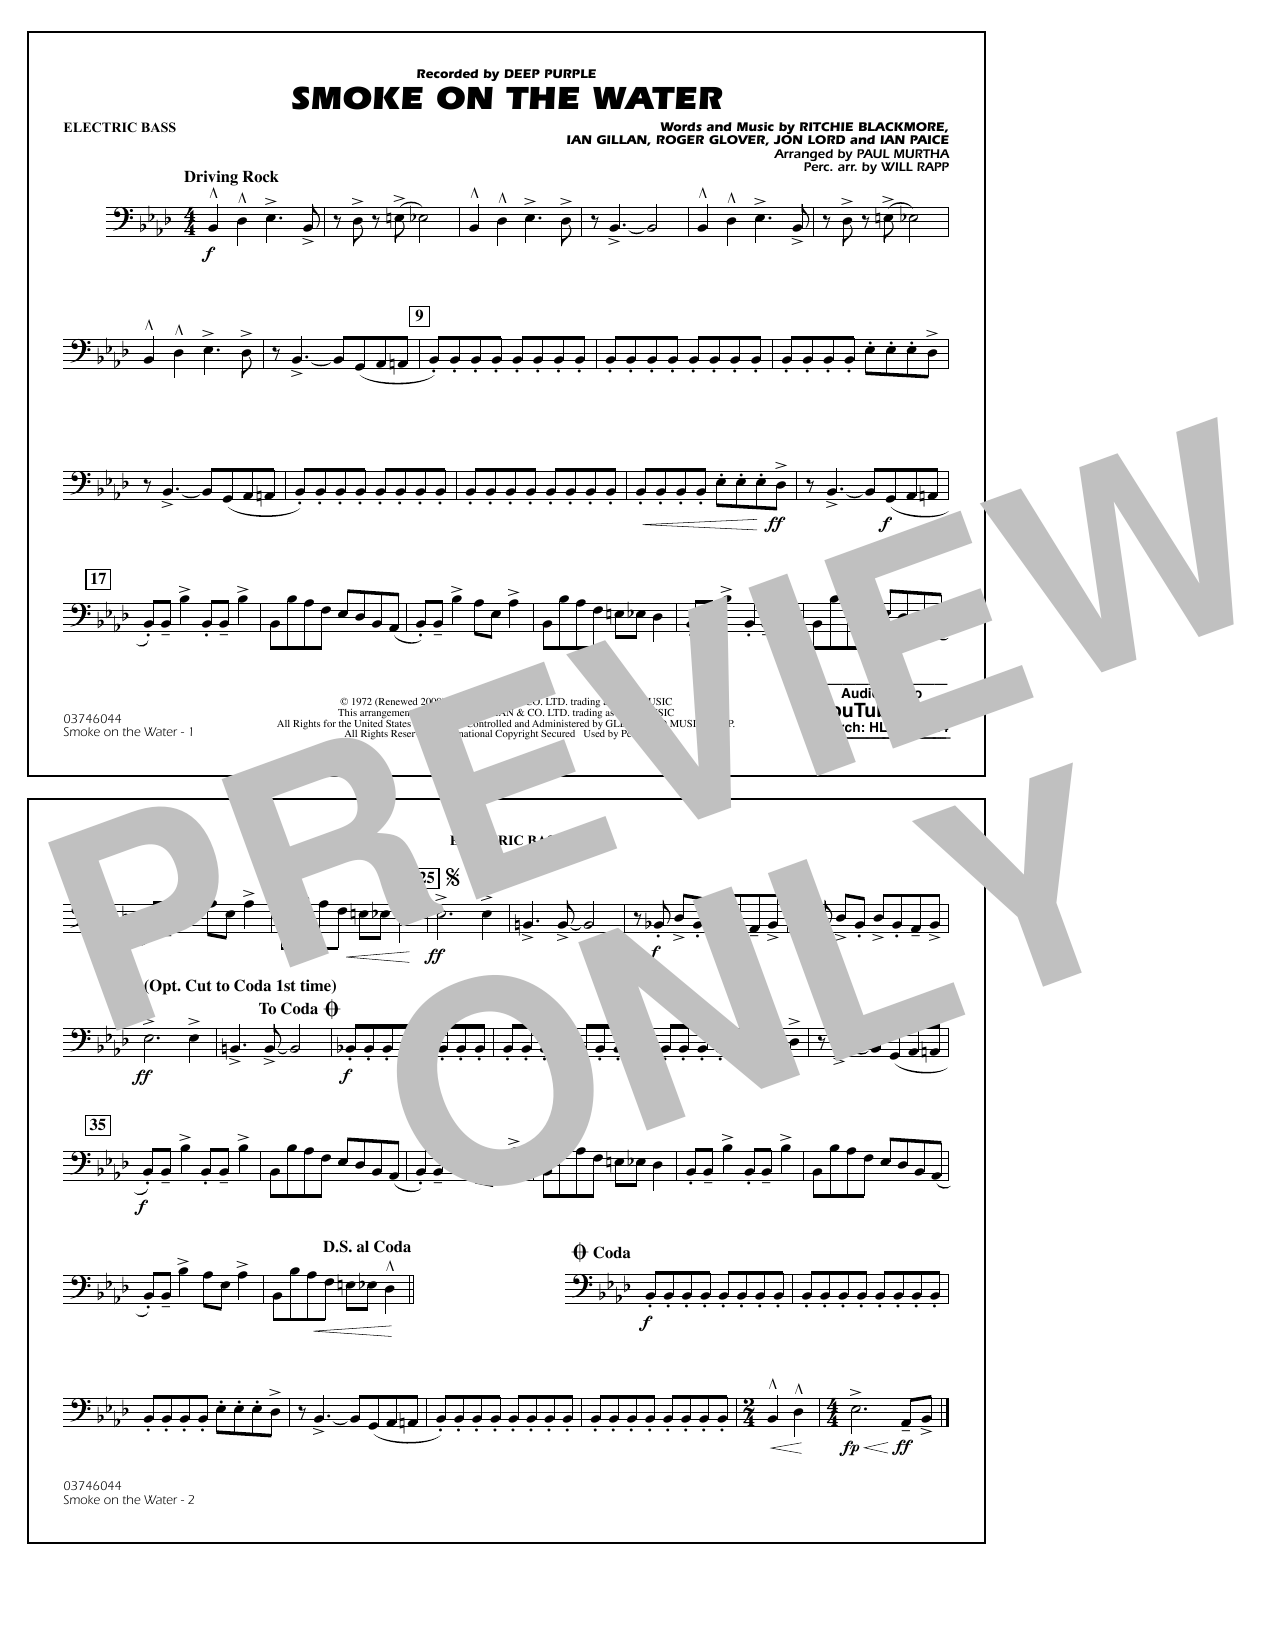 Paul Murtha Smoke on the Water - Electric Bass sheet music notes and chords. Download Printable PDF.